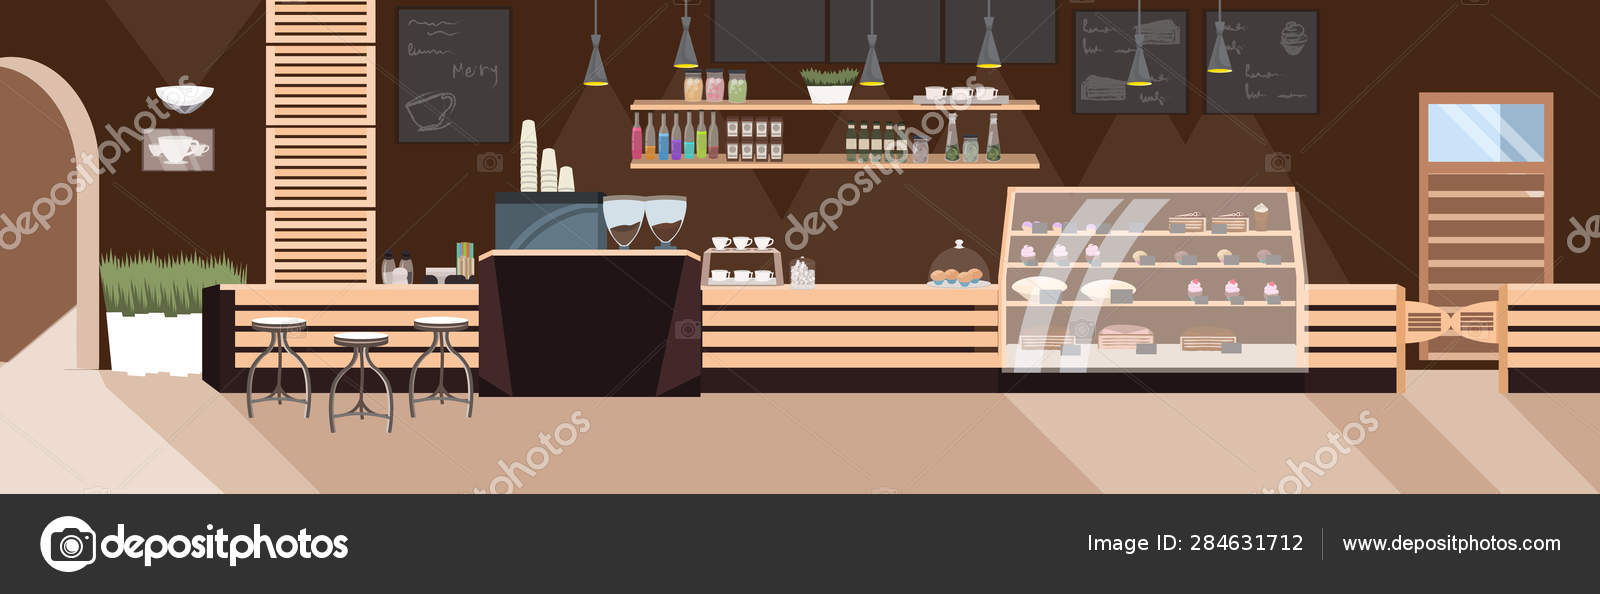 Modern Cafe Empty No People Restaurant With Furniture Coffee Shop Interior Flat Horizontal Stock Vector C Mast3r 284631712